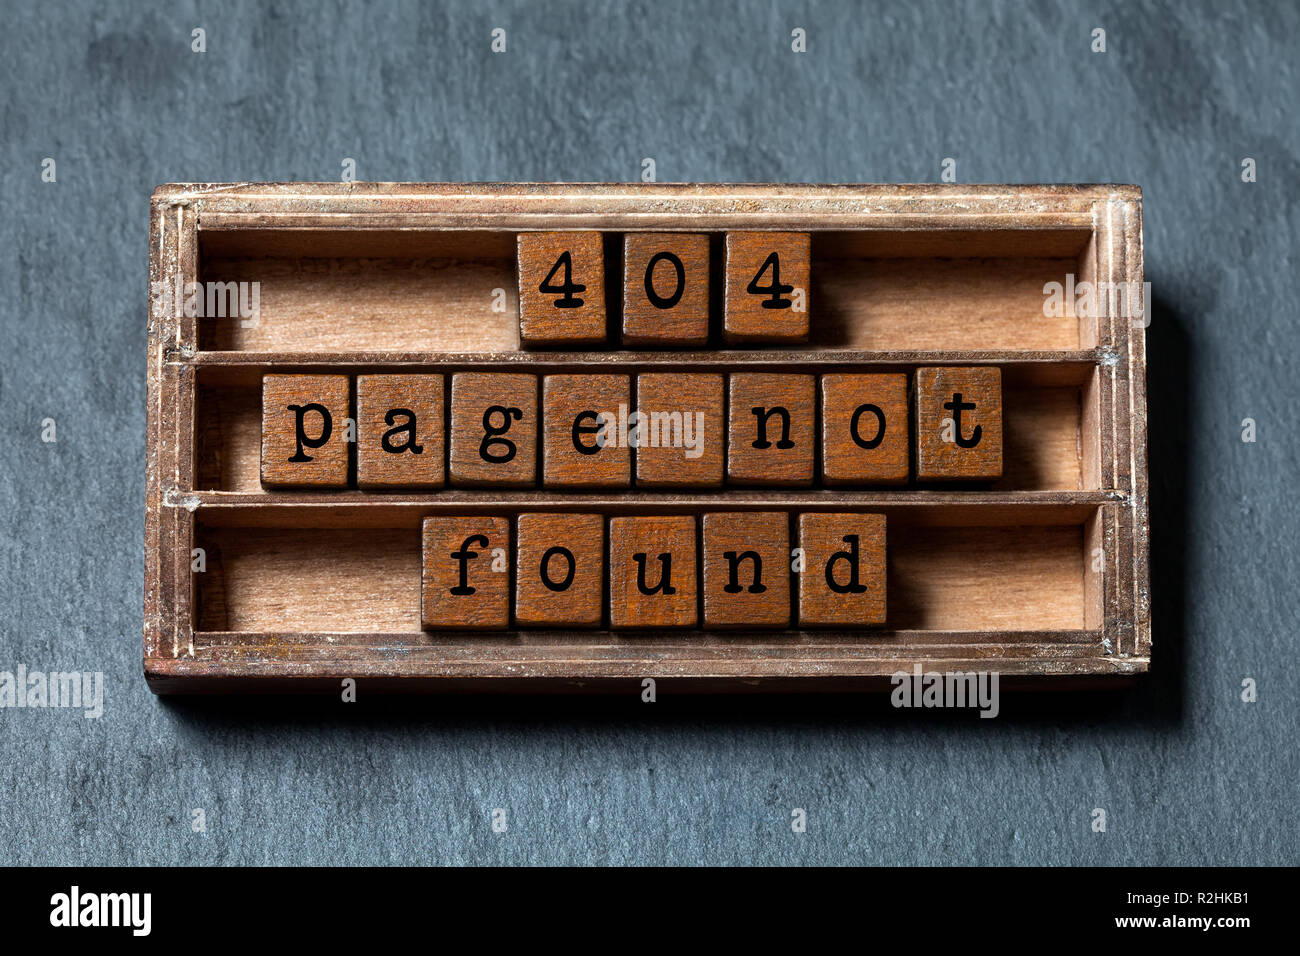 Error 404 page not found concept. Vintage box, wooden cubes with old style letters. Gray stone textured background - Stock Image